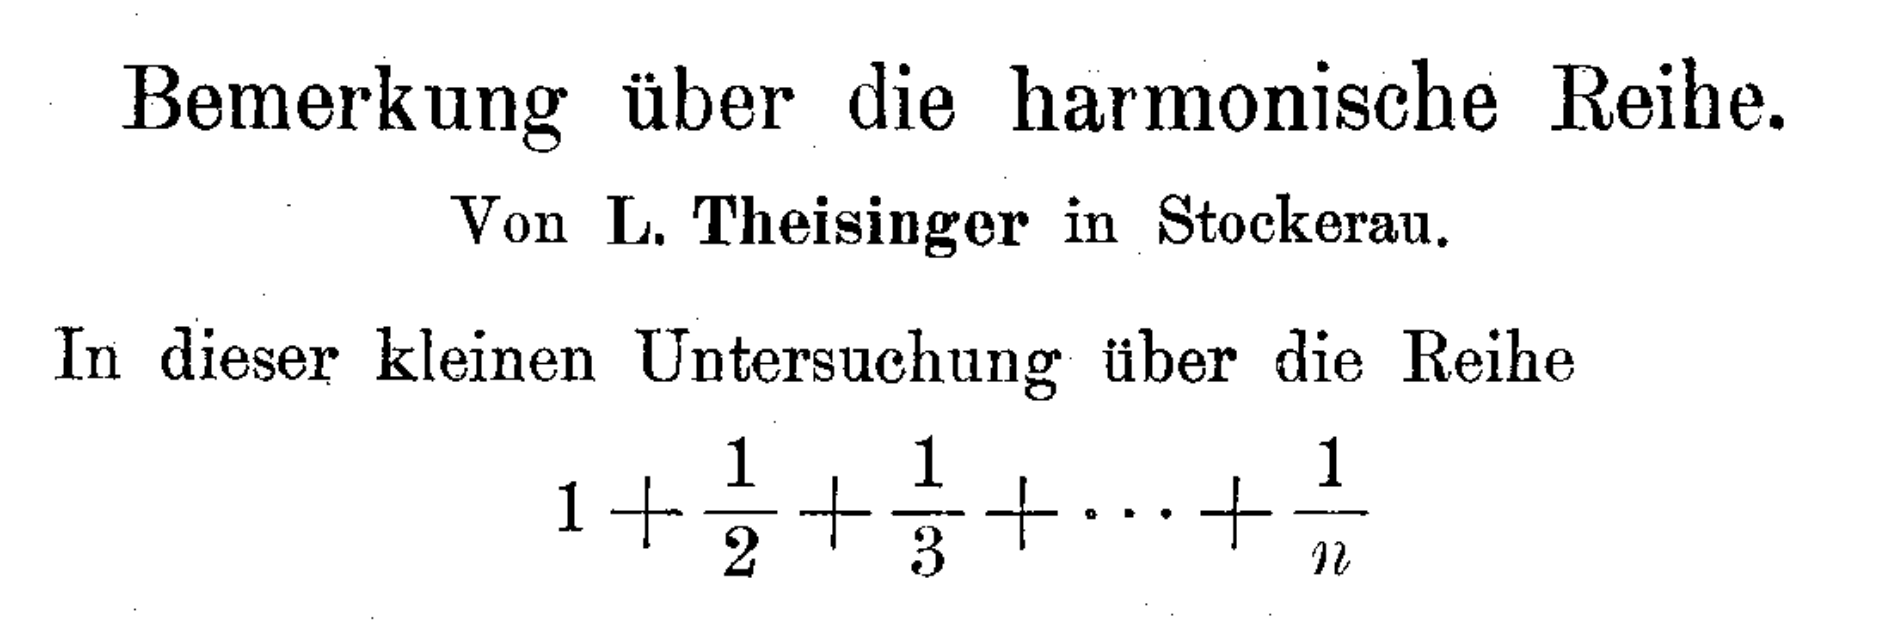 Opening lines of the Theisinger 1915 paper